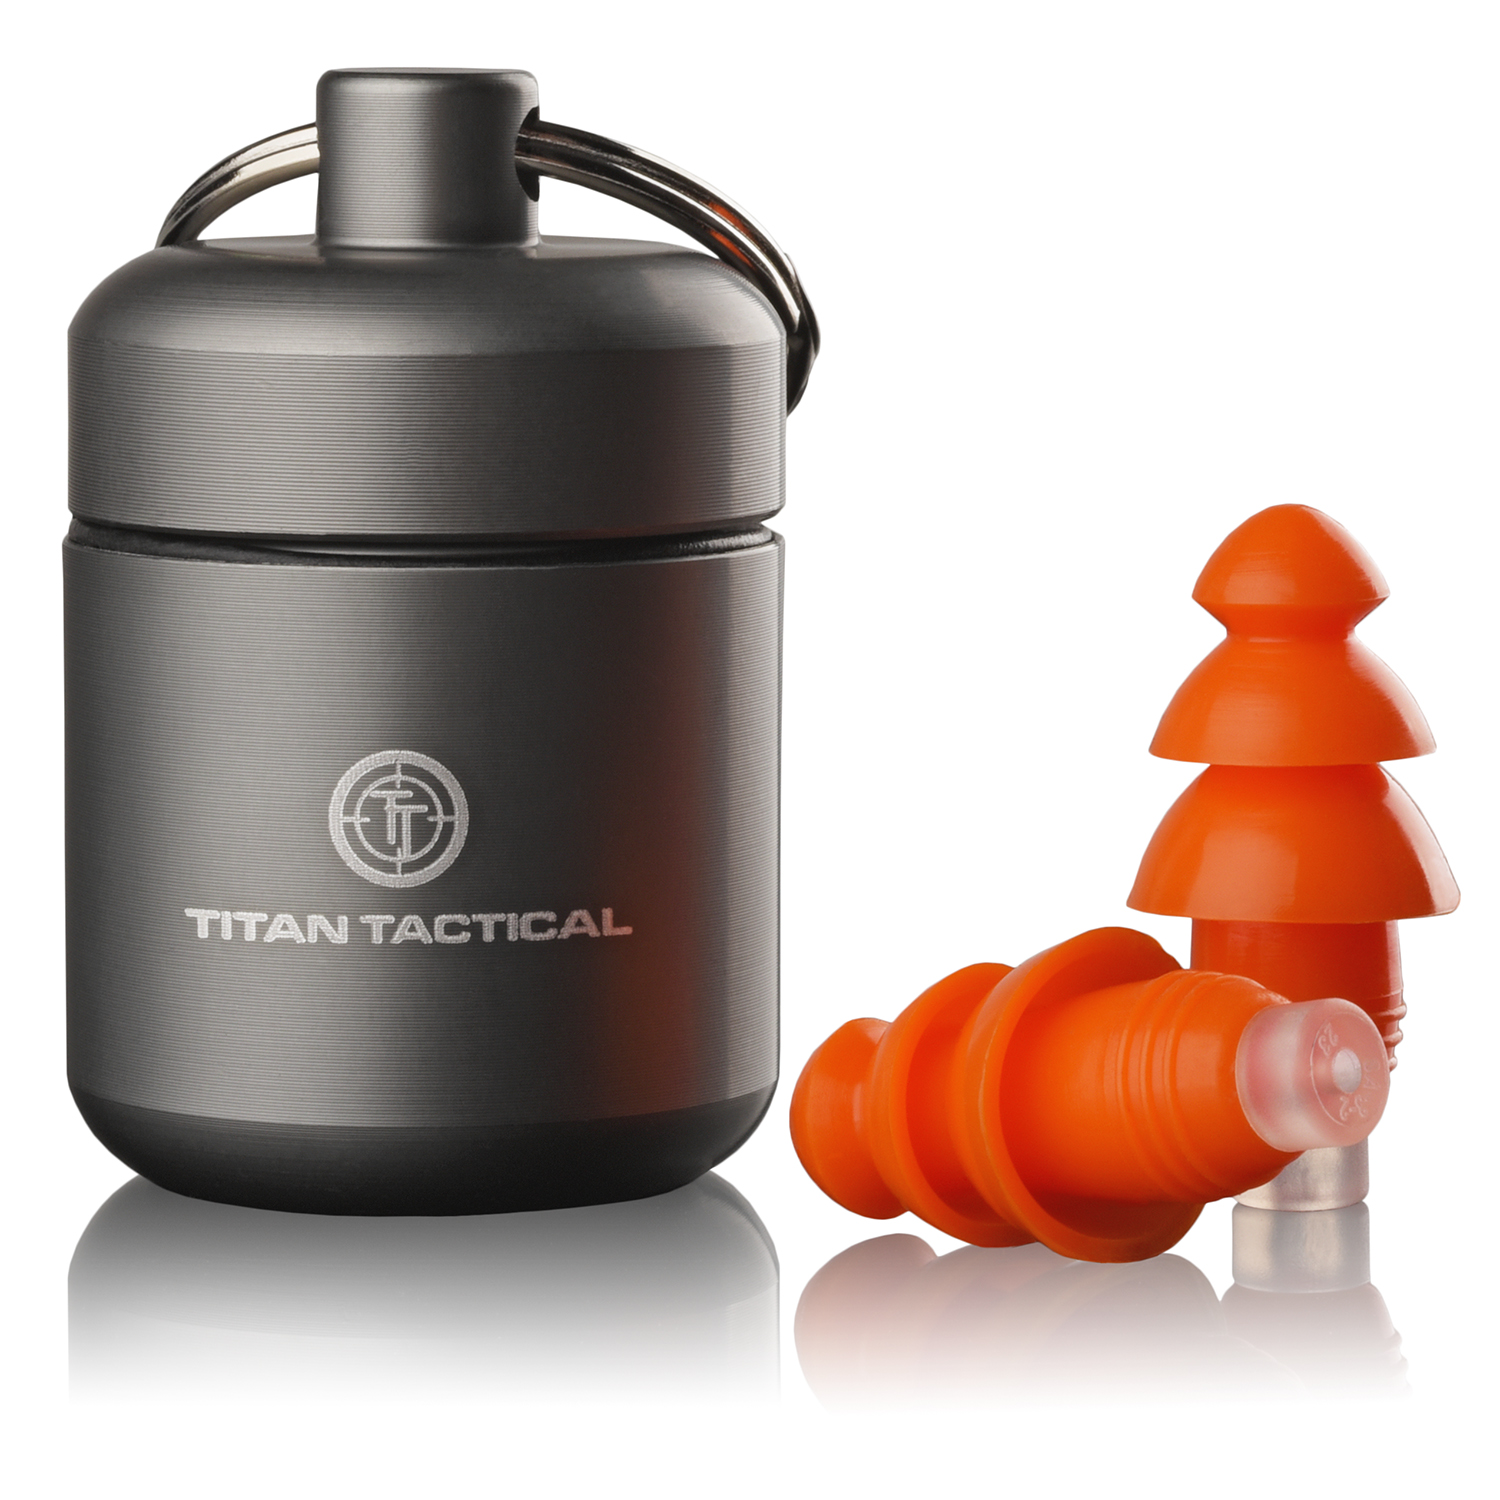 Titan Tactical 29NRR Reusable Shooting Ear Plugs w/ Removable Noise Filter + Heavy Duty Aluminum Case (for Normal + Small Ear Canals)